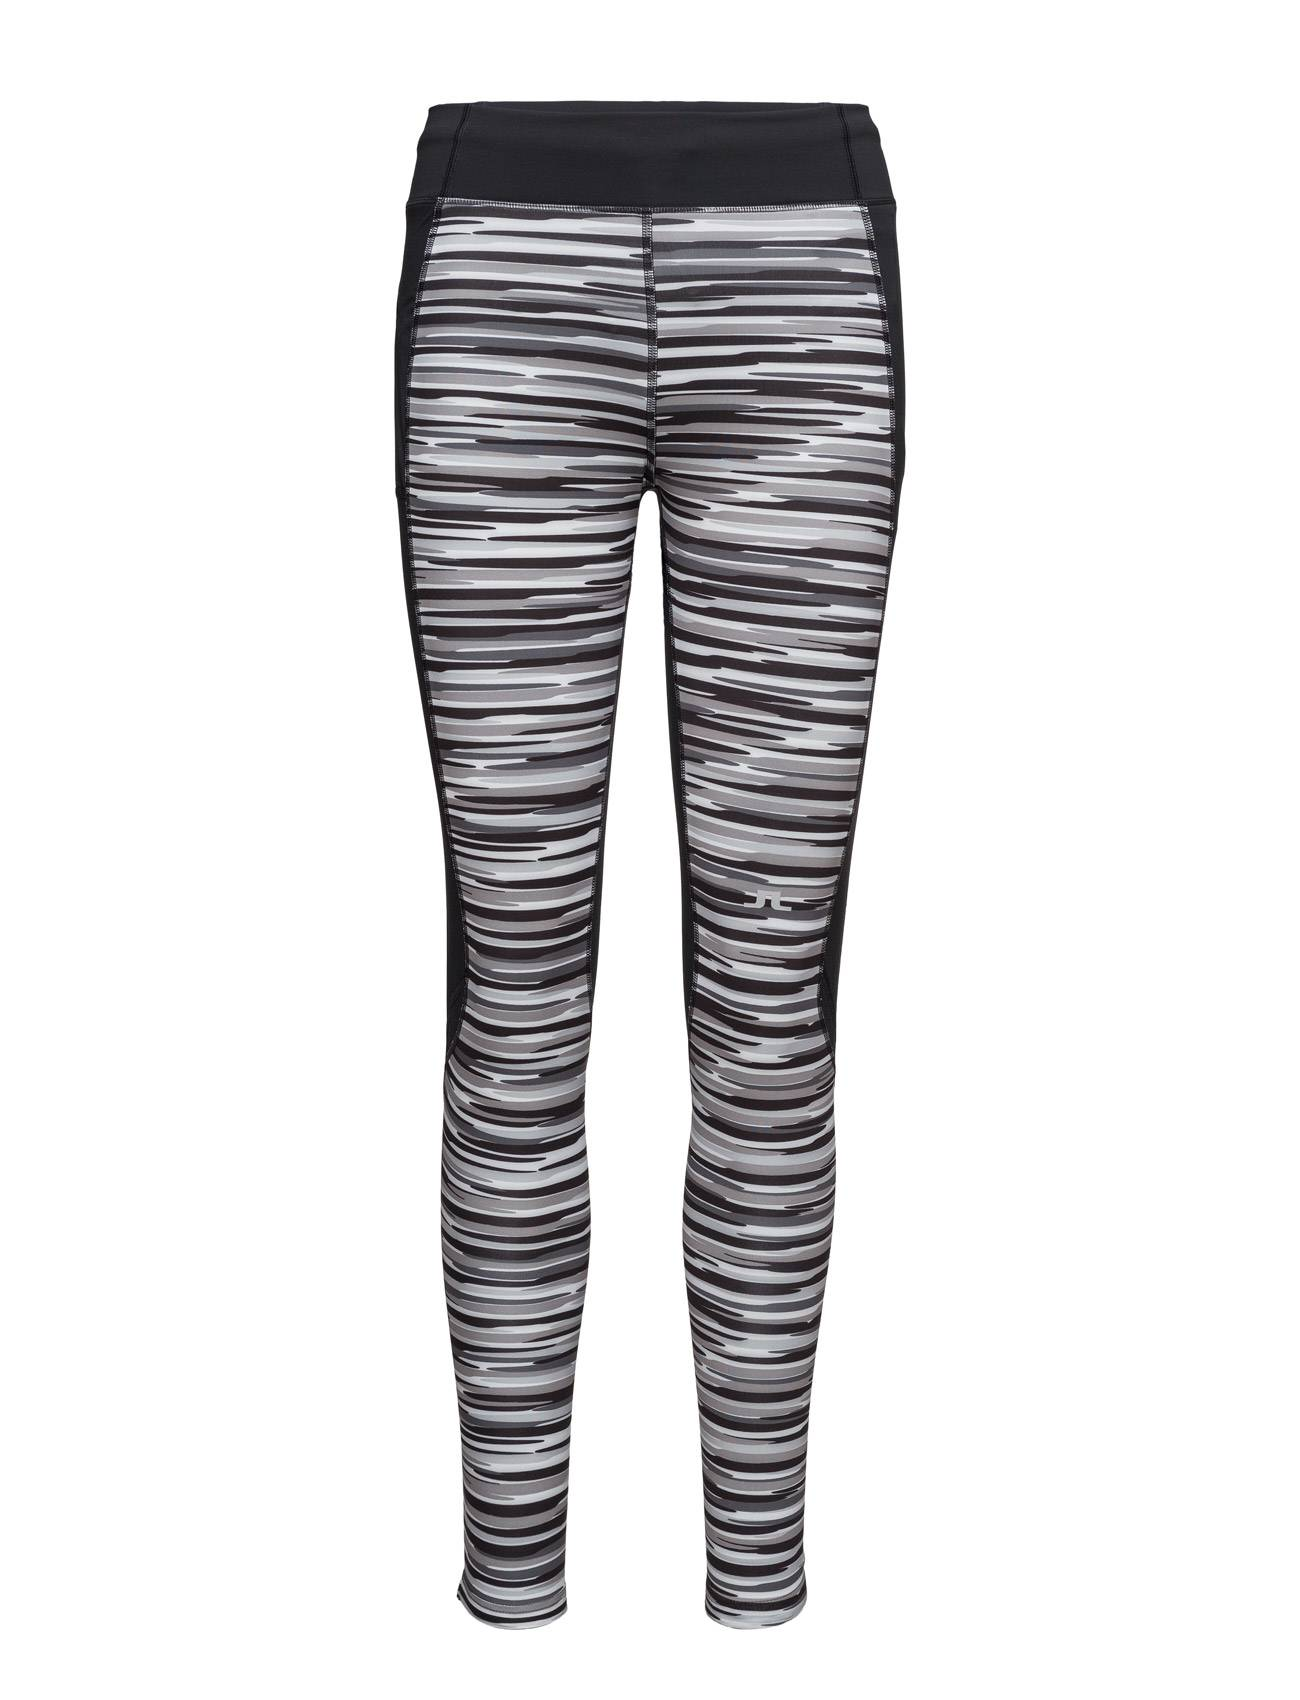 J. Lindeberg W Running Tights Comp. Poly